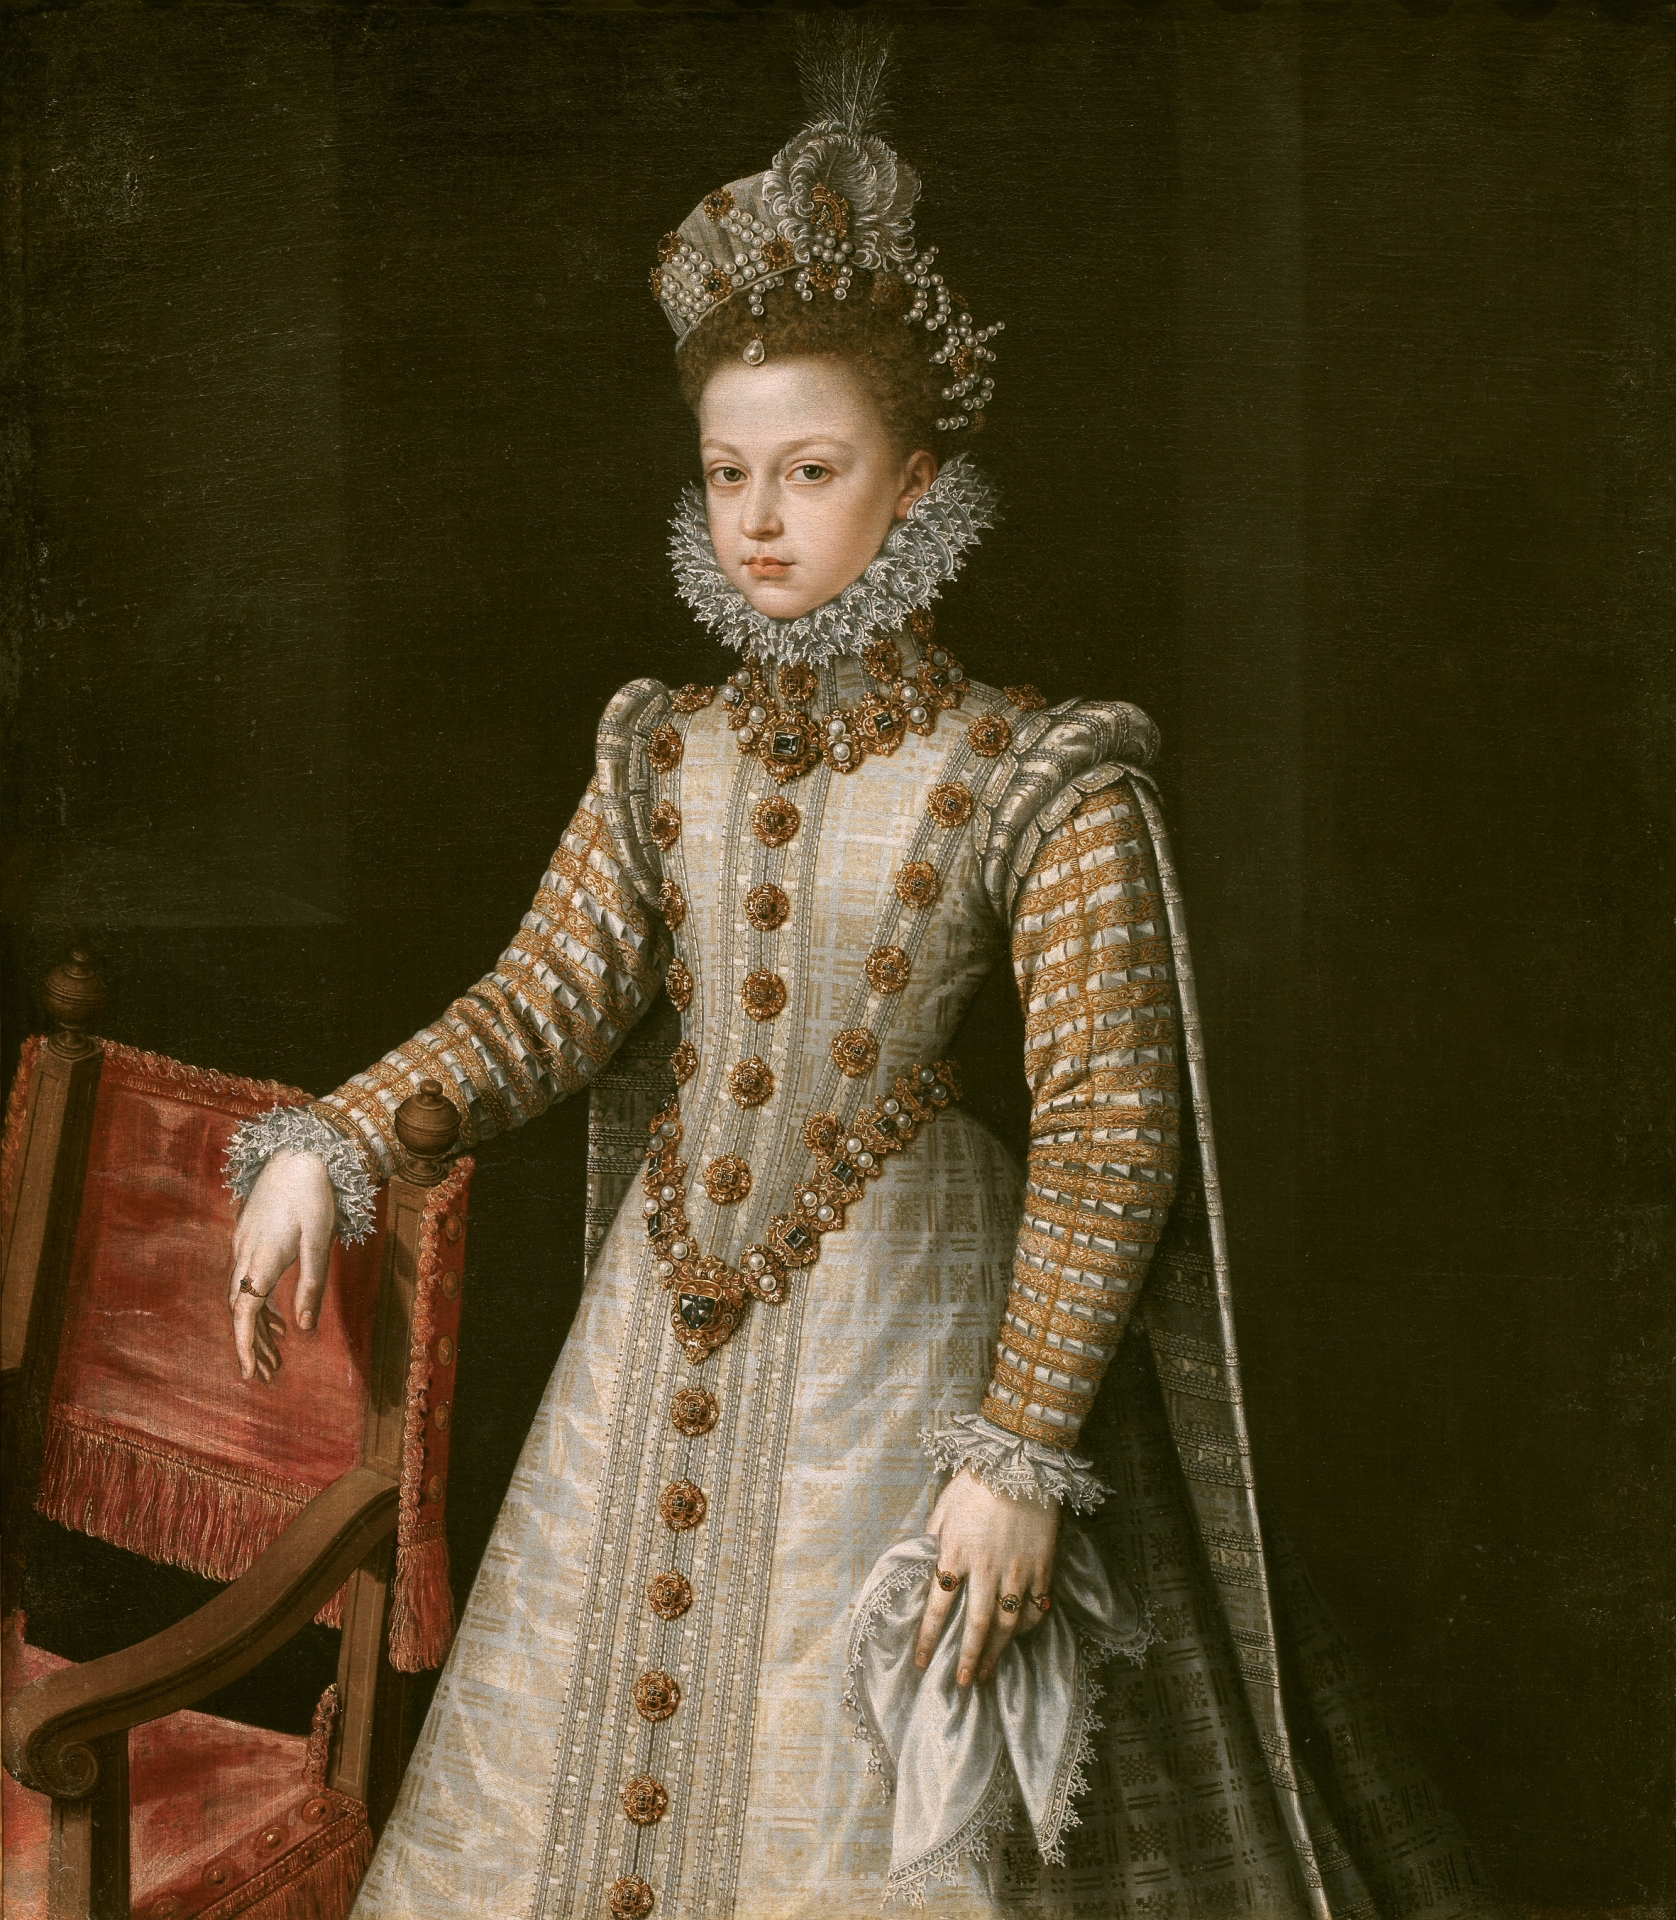 Infanta Isabel Clara Eugenia, oil on canvas, 1579,. Alonso Sanchez Coello (Image courtesy of the Prado Museum)